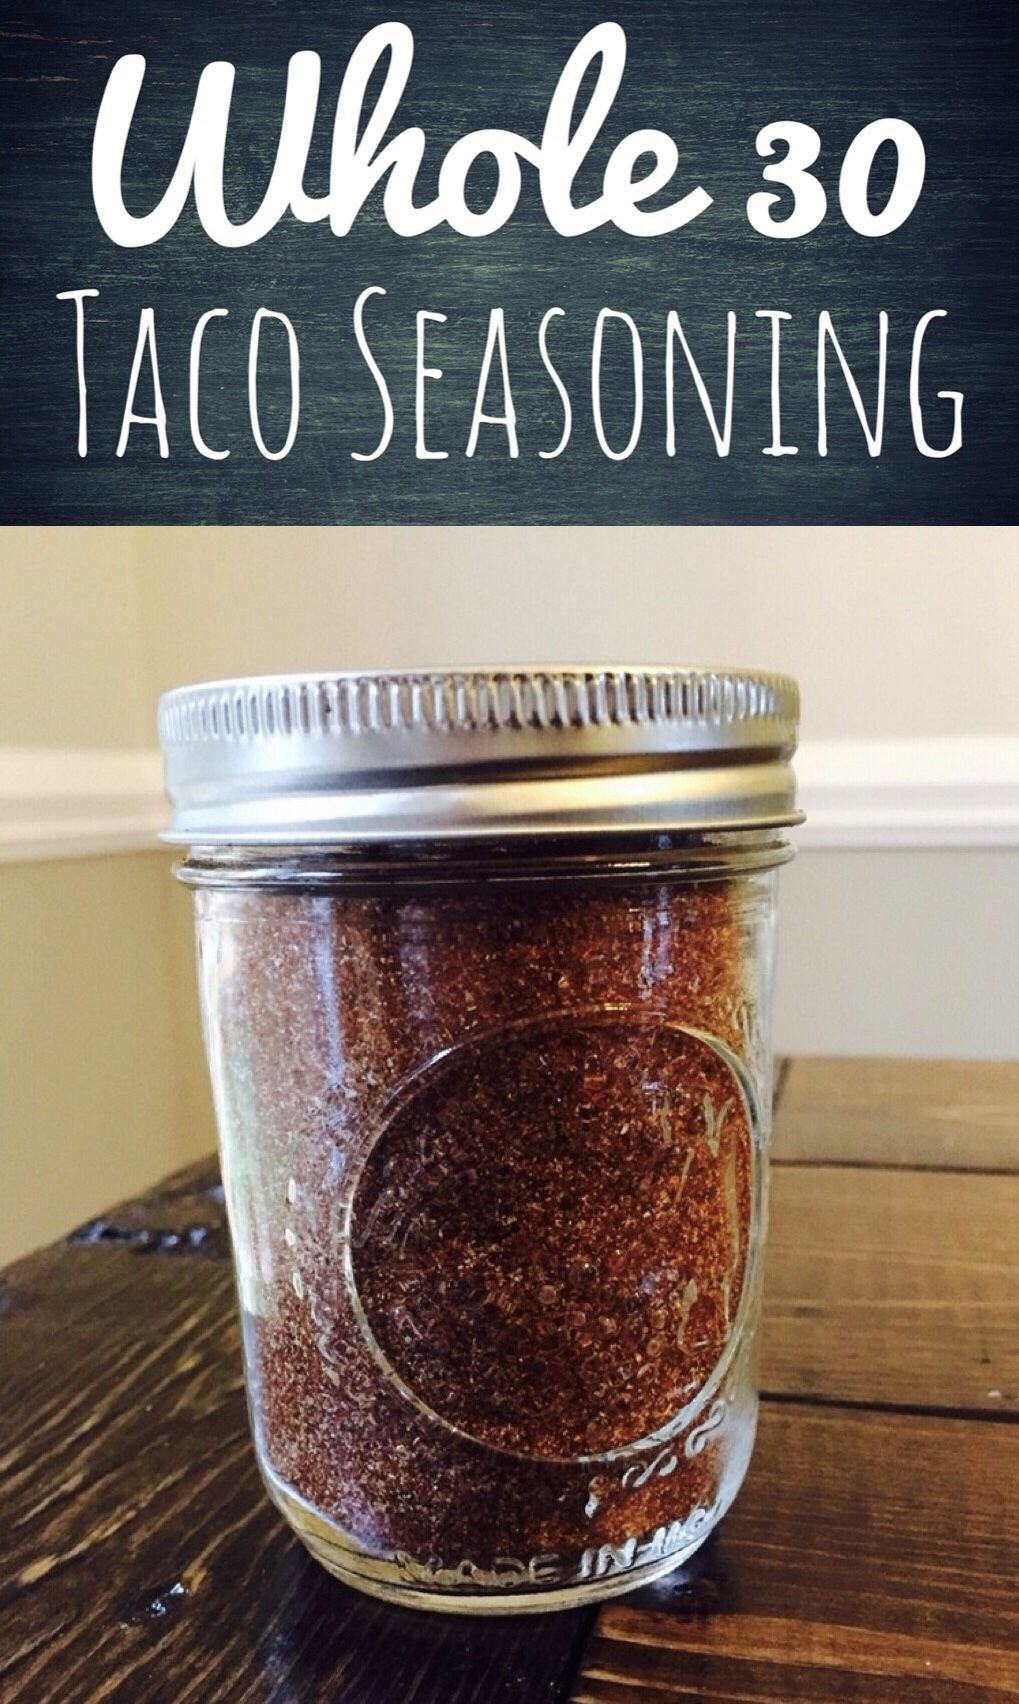 Whole 30 Taco Seasoning - Glitter On A Dime #maketacoseasoning